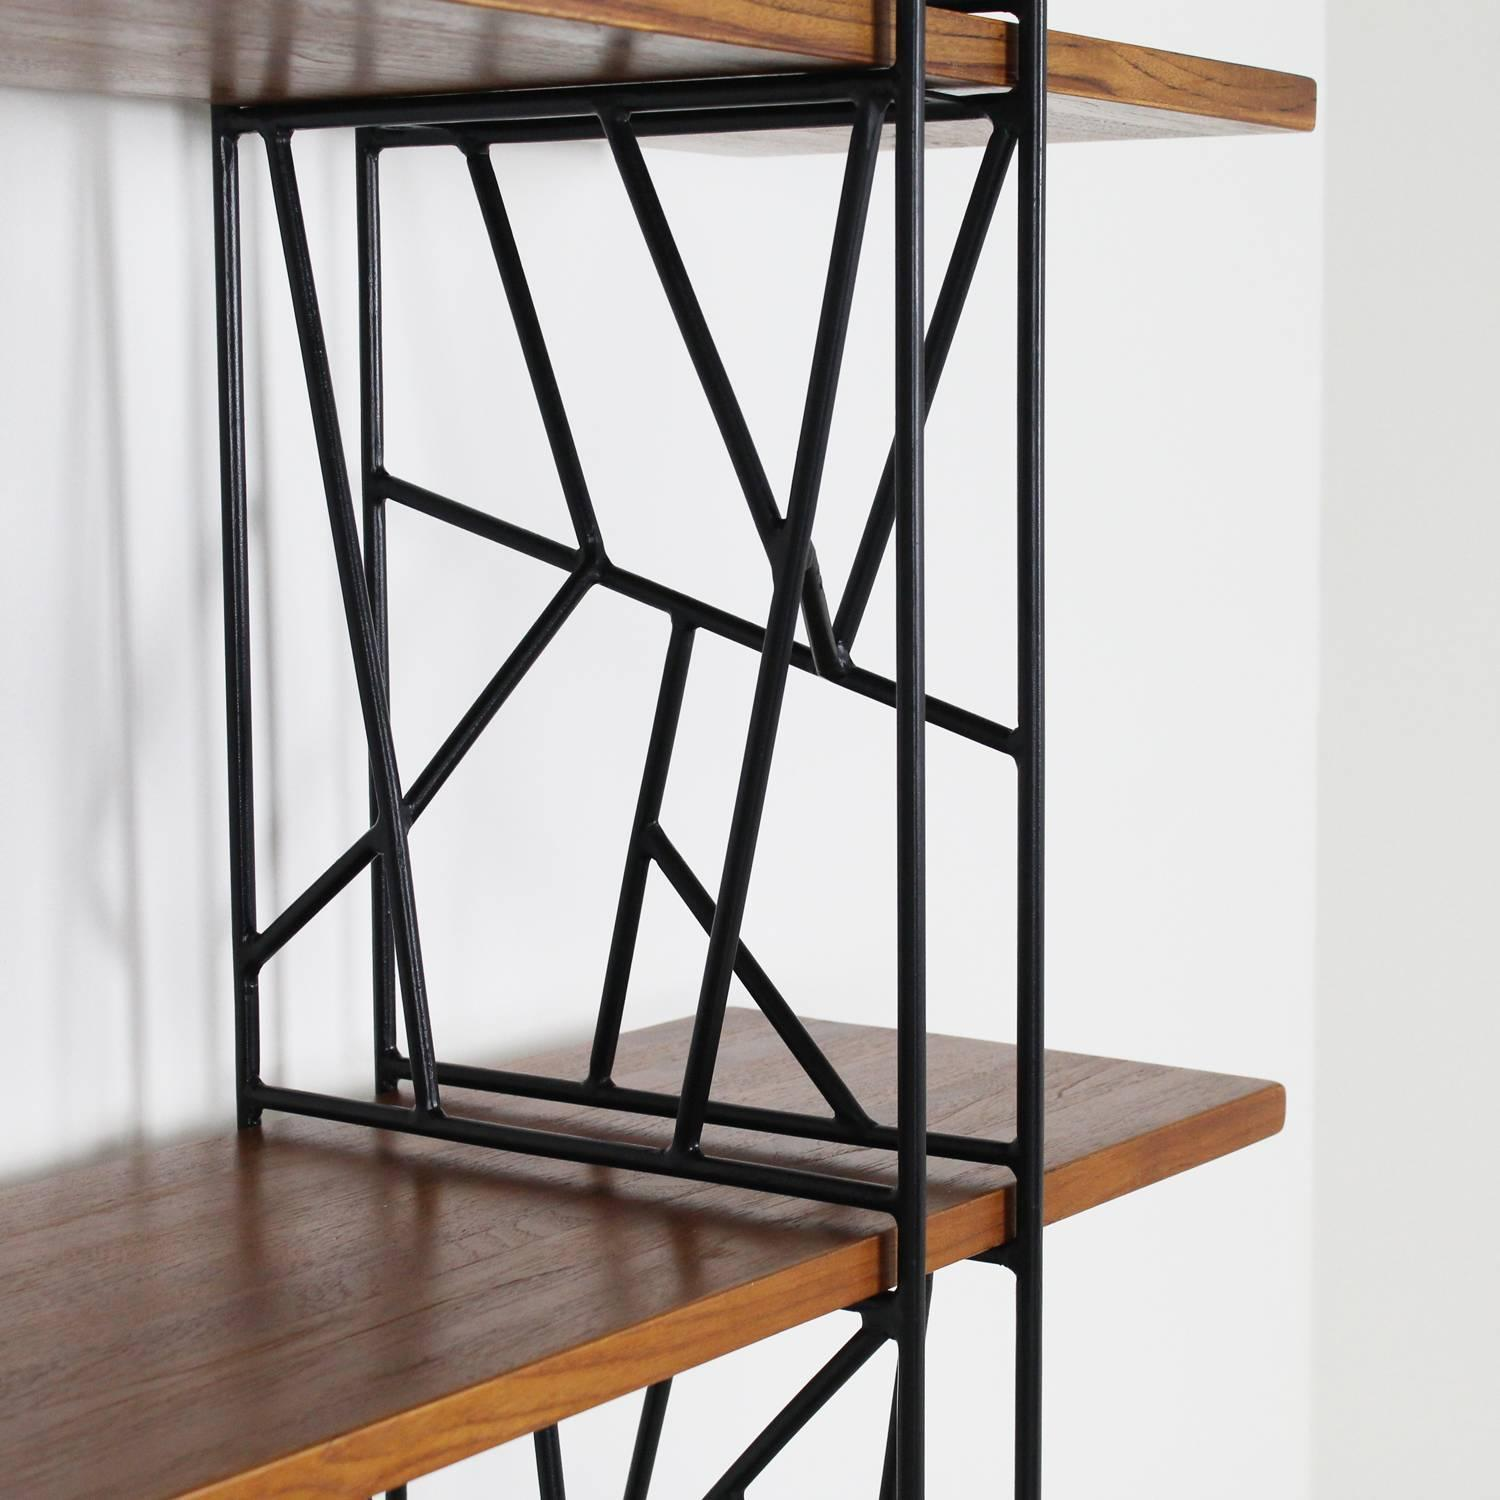 Superb img of Bookshelf with Black Metal Frame and Wood Shelves 1980 at 1stdibs with #976334 color and 1500x1500 pixels